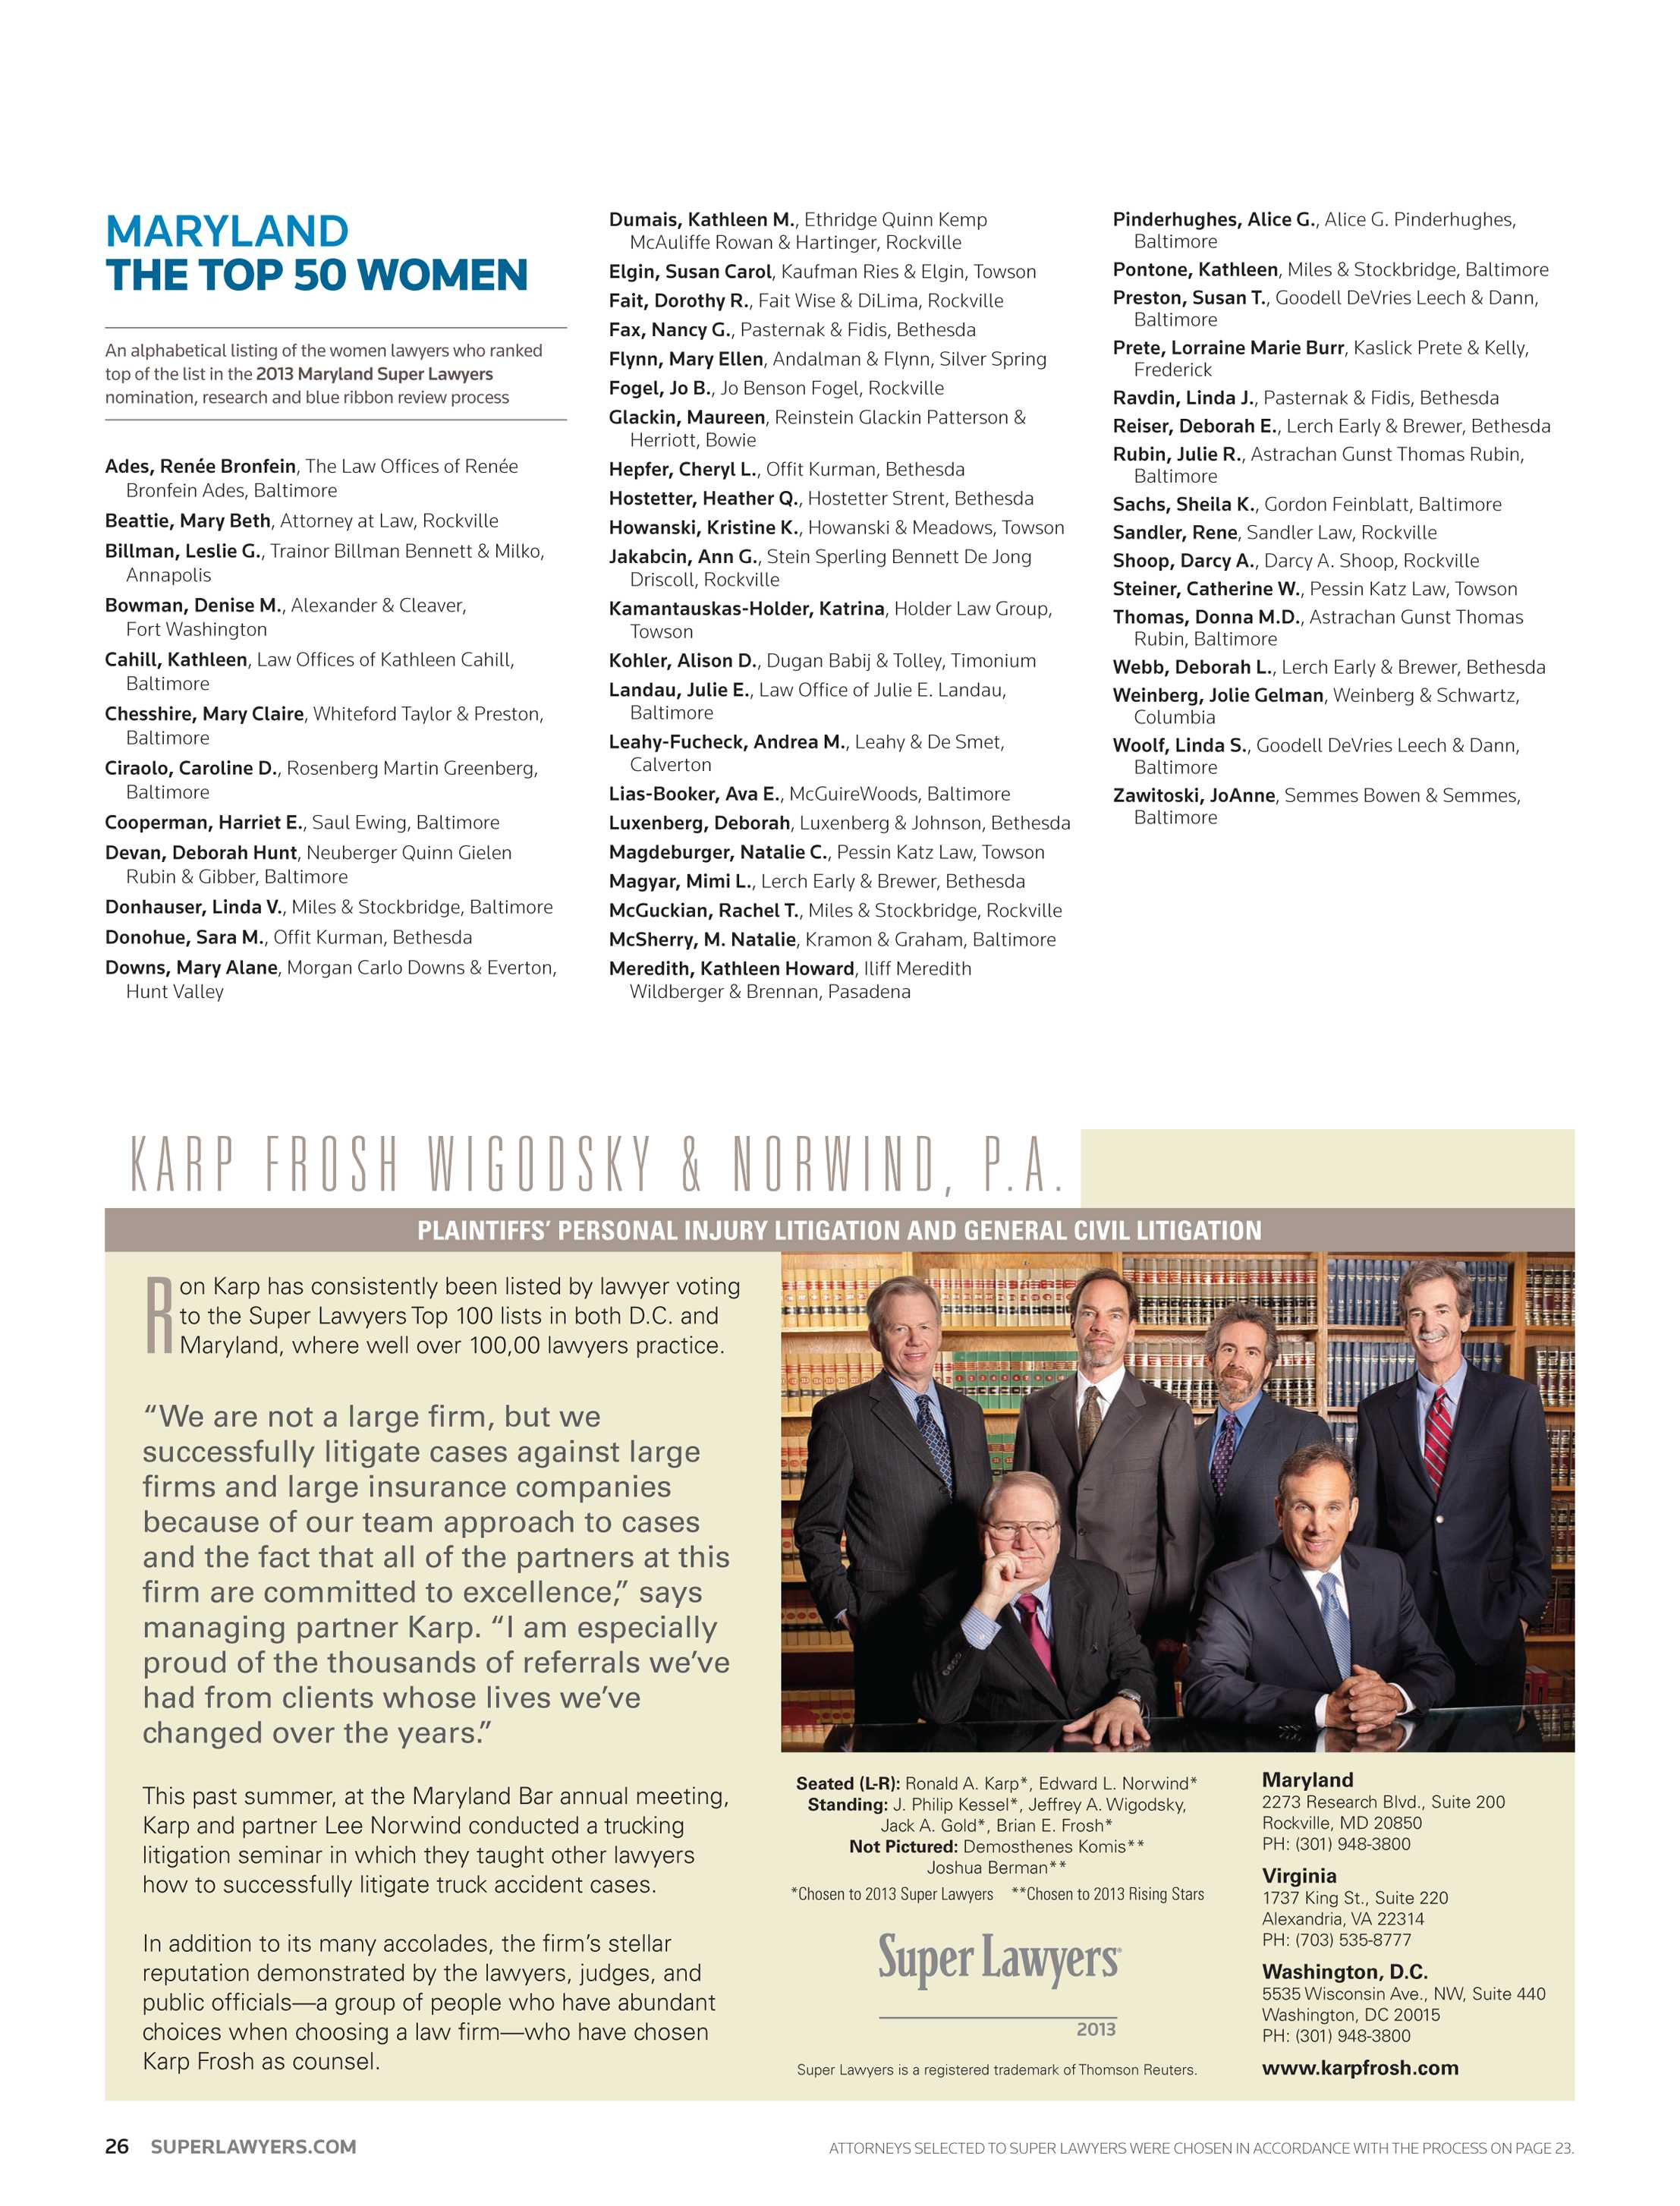 Super Lawyers - Maryland 2013 - page 26